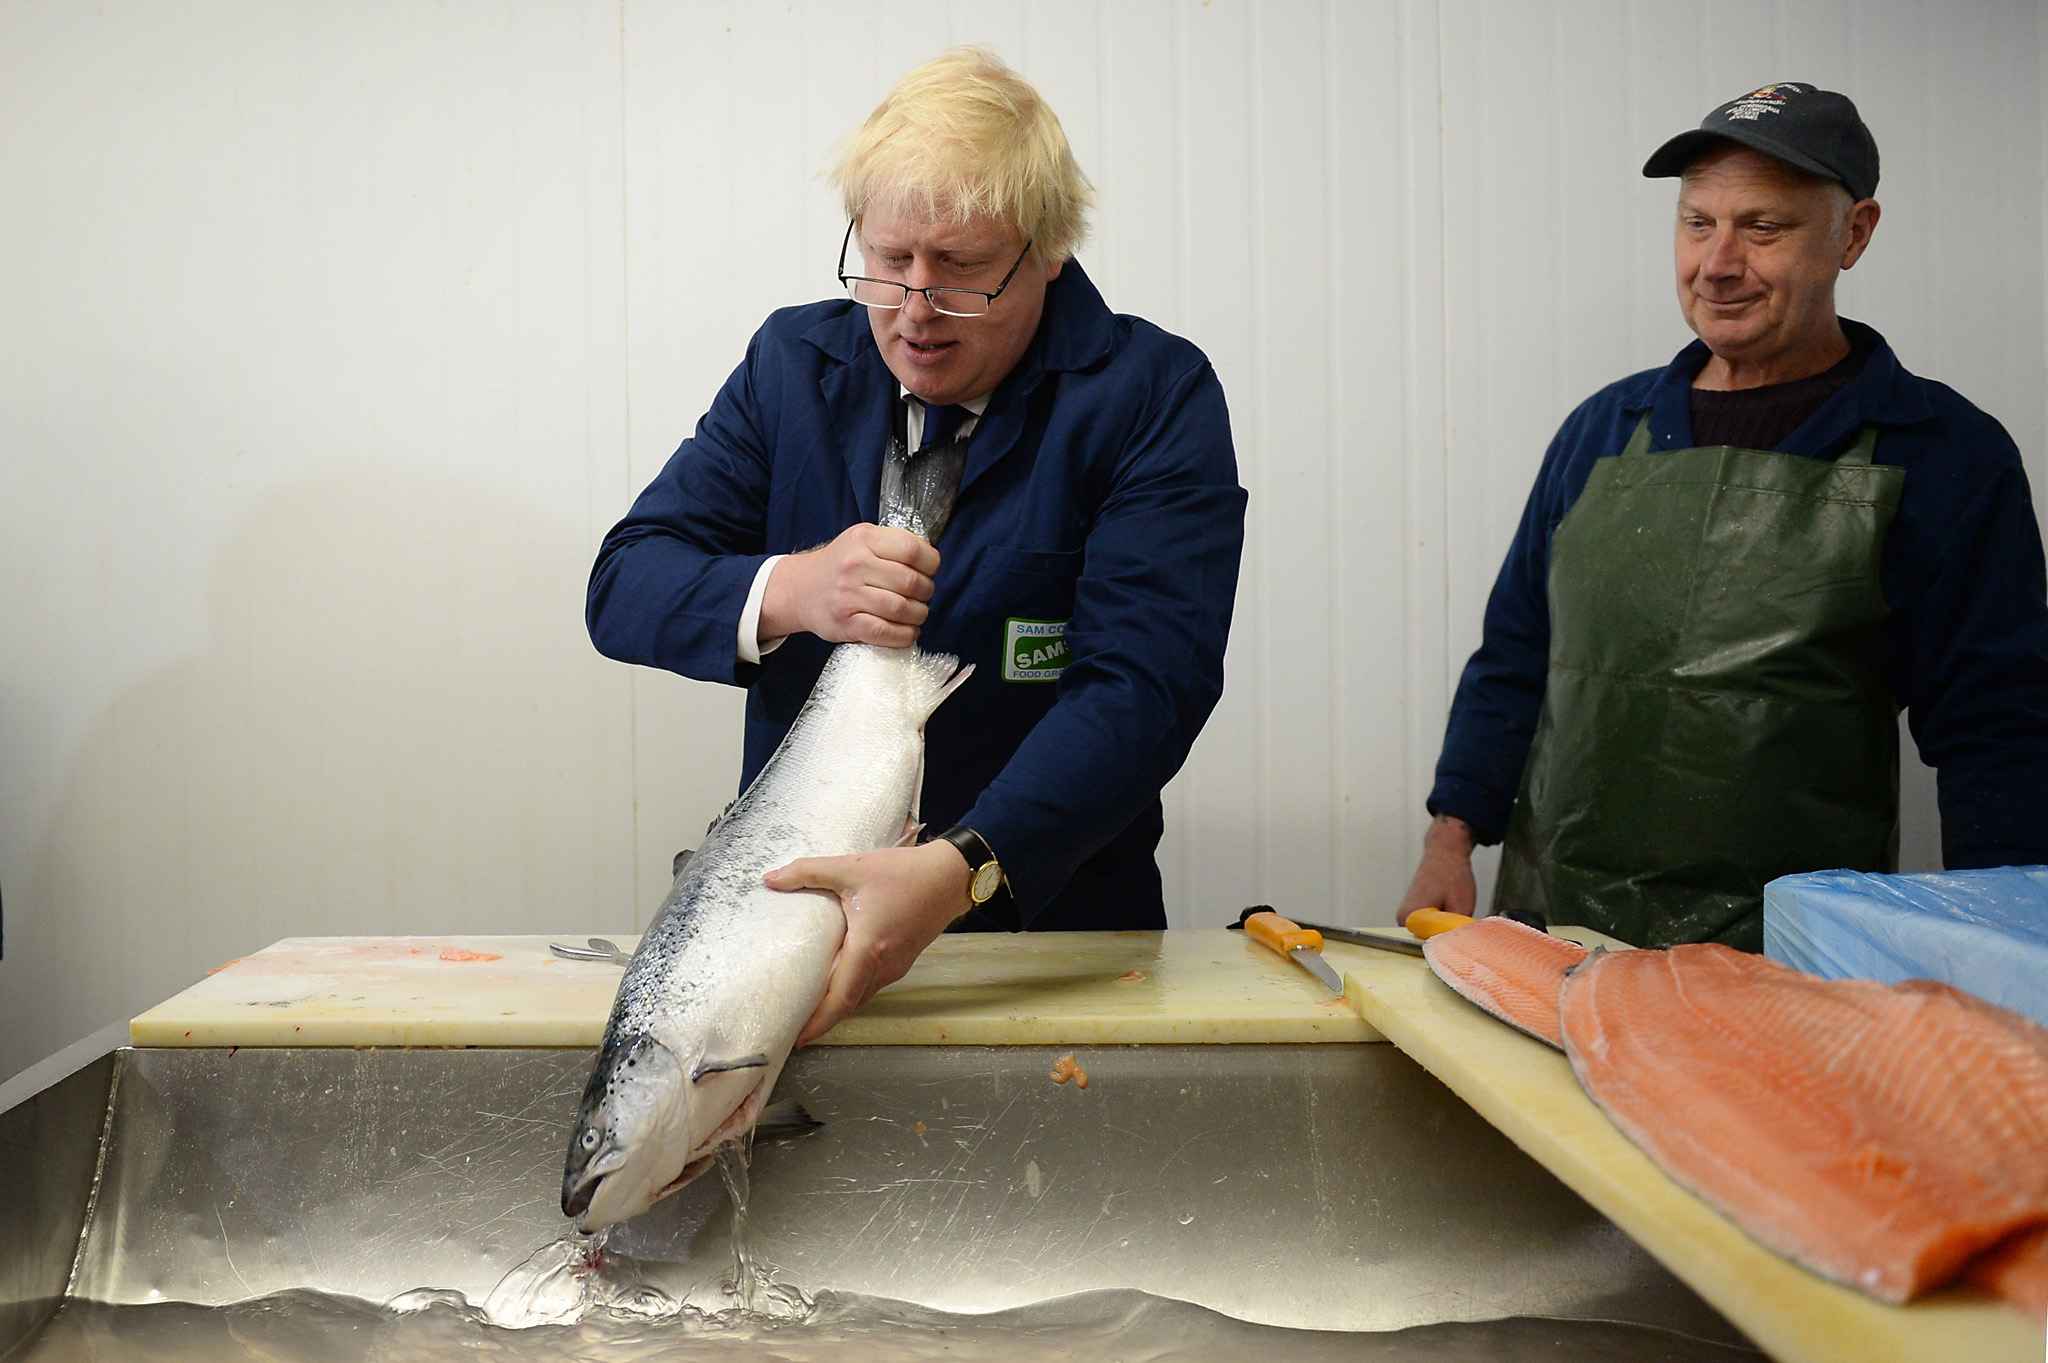 Boris Johnson MP chats with Basil Burgess (right) as he visits Sam Cole Foods fish processing factory in Lowestoft, Suffolk, where he was campaigning on behalf of the Vote Leave EU campaign. PRESS ASSOCIATION Photo. Picture date: Thursday June 16, 2016. See PA story POLITICS EU. Photo credit should read: Stefan Rousseau/PA Wire